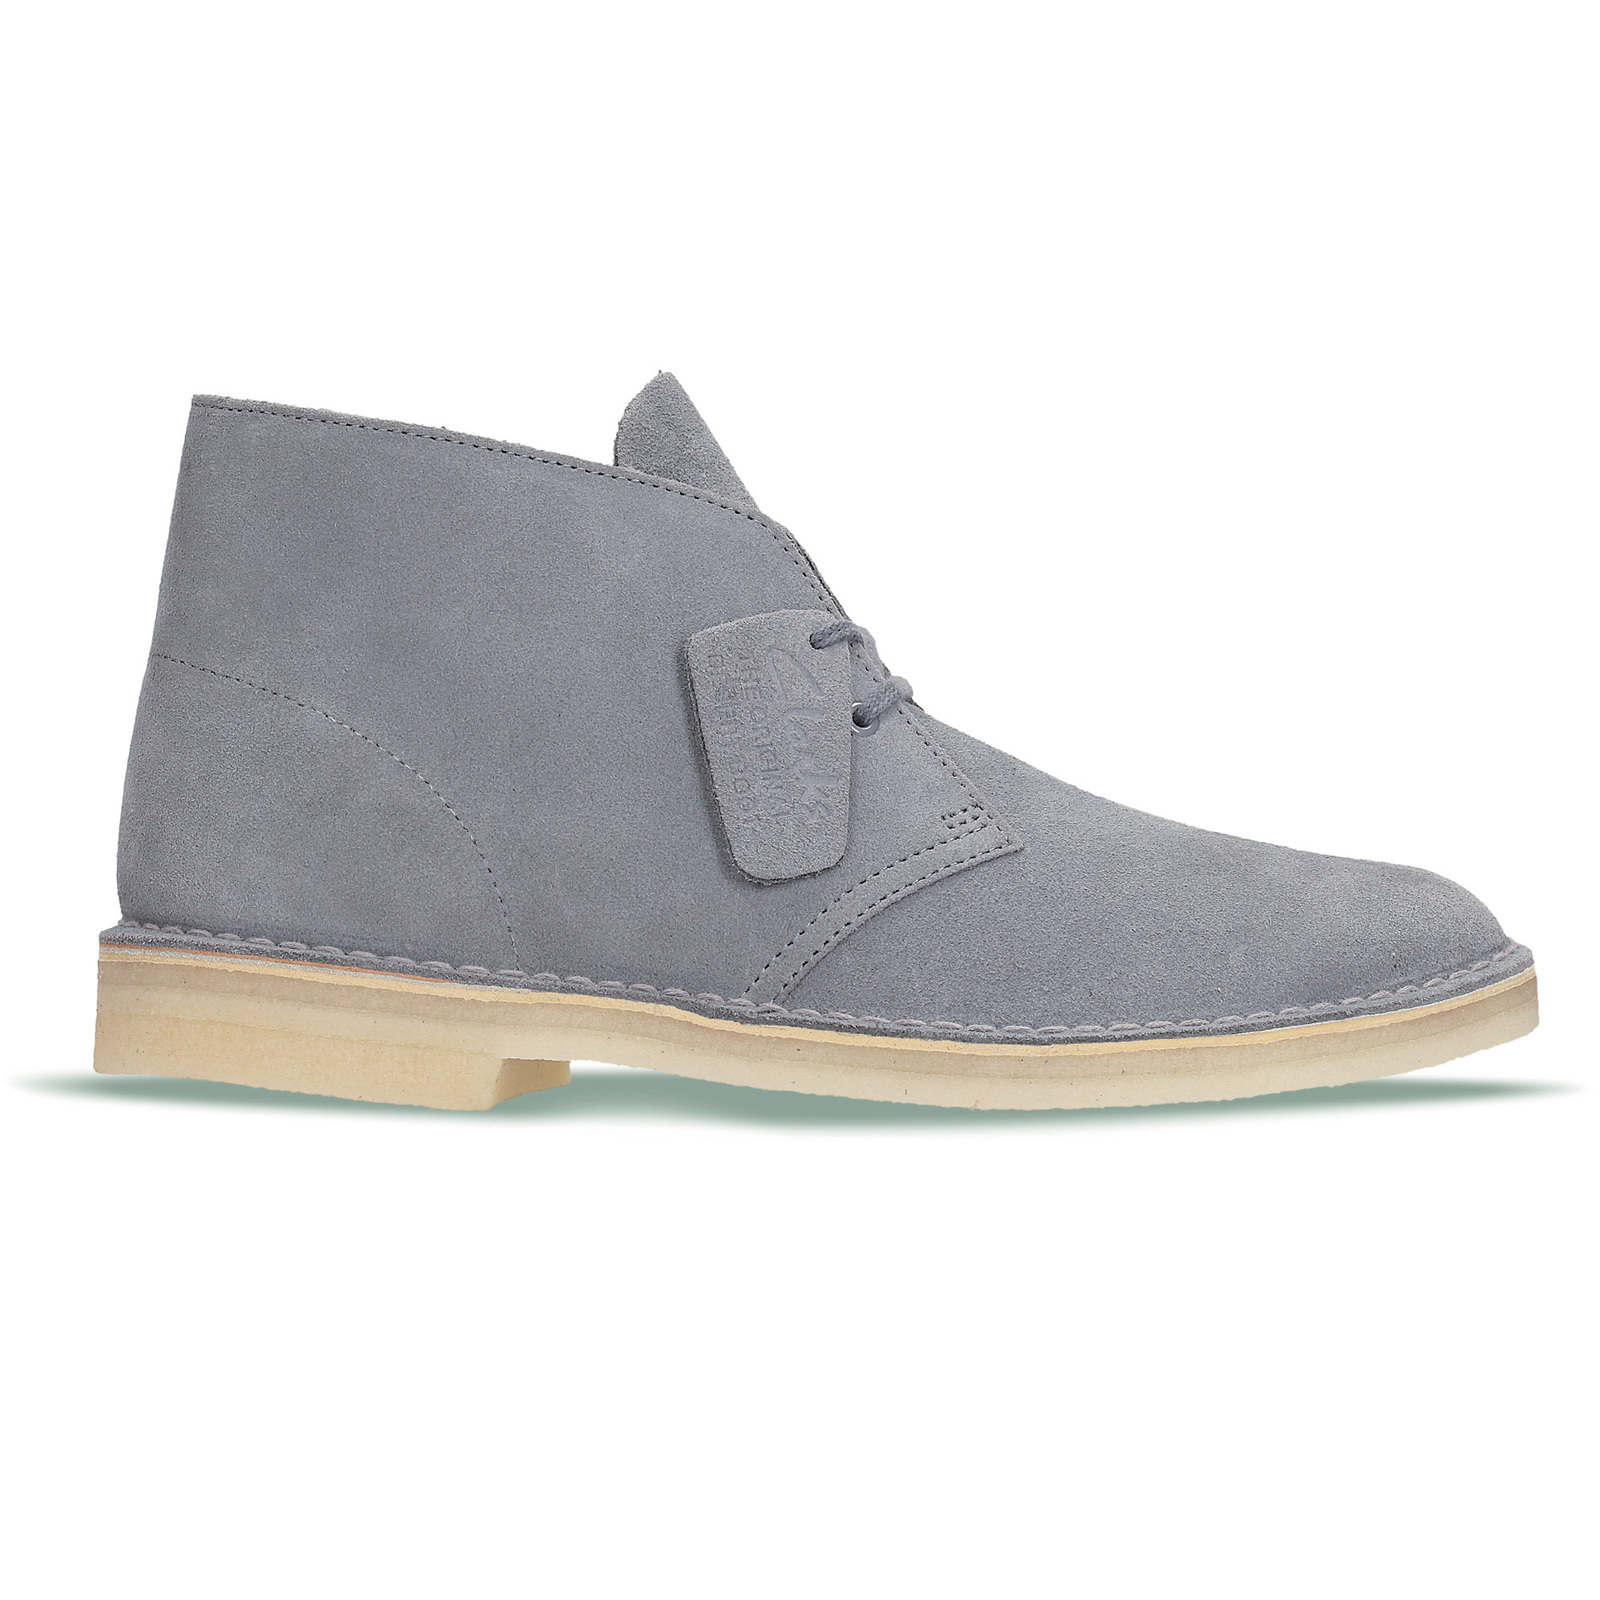 buy impressive clarks originals blue grey suede shoes